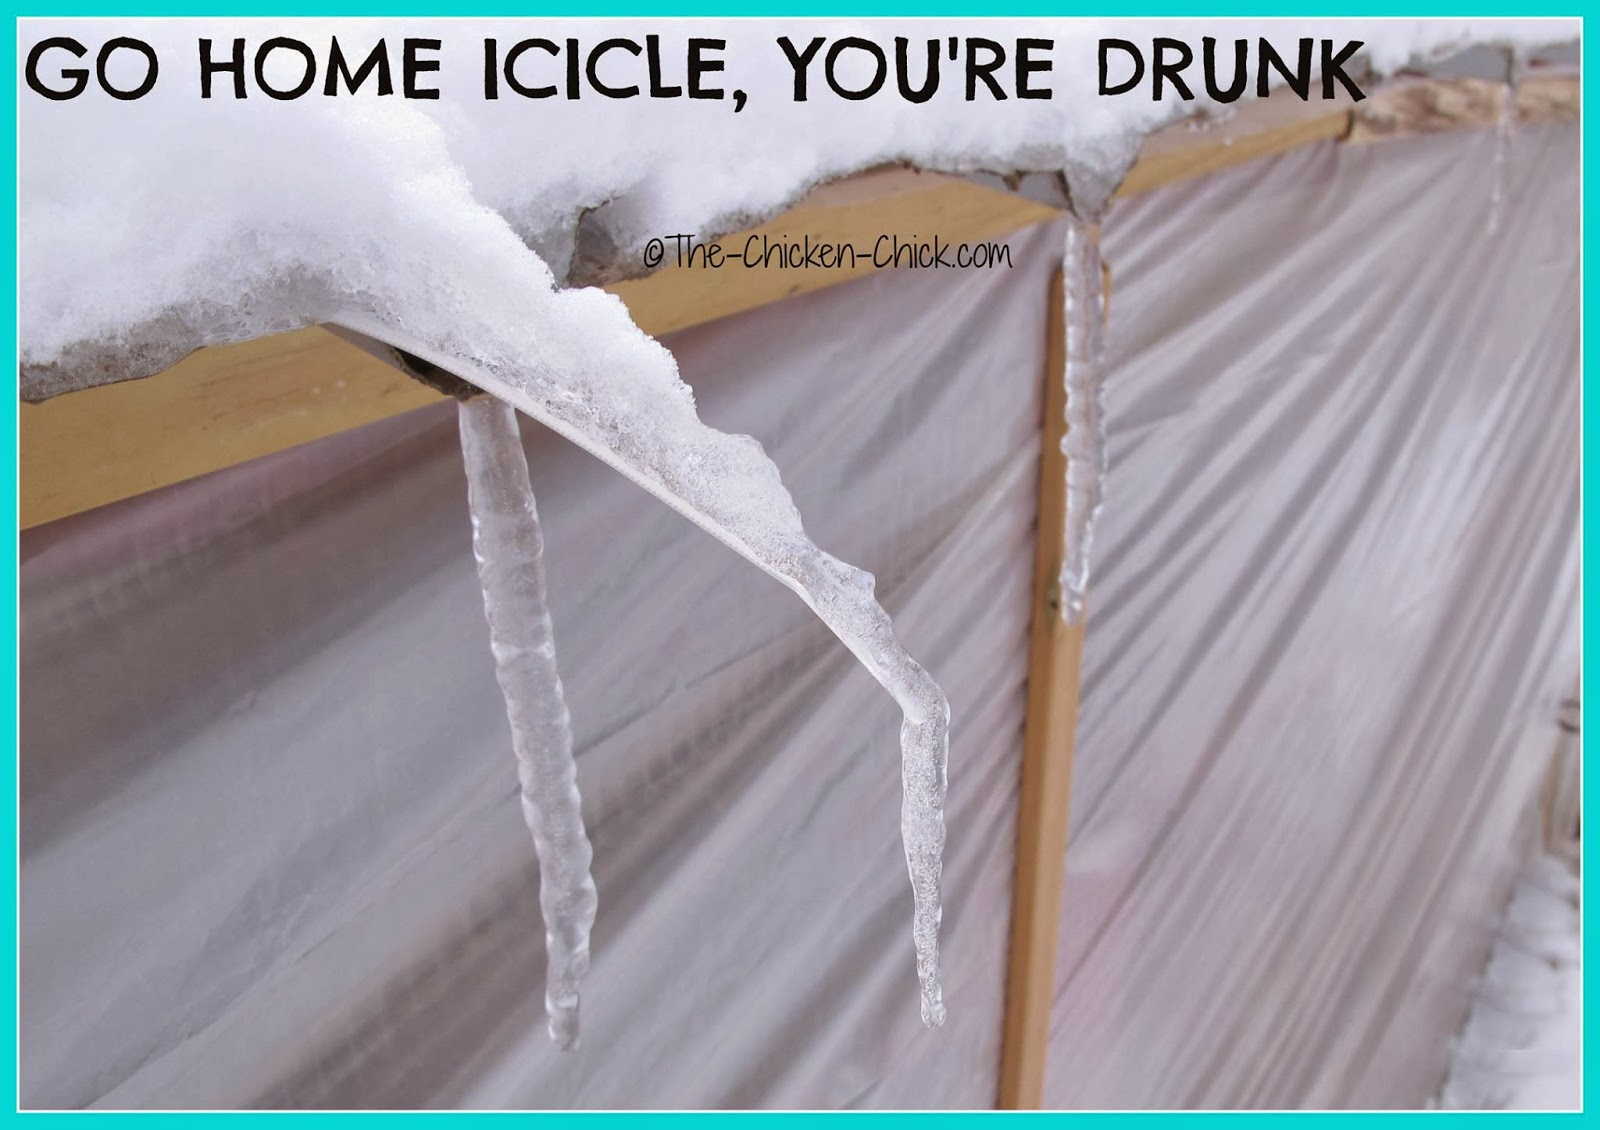 Go home icicle, you're drunk.